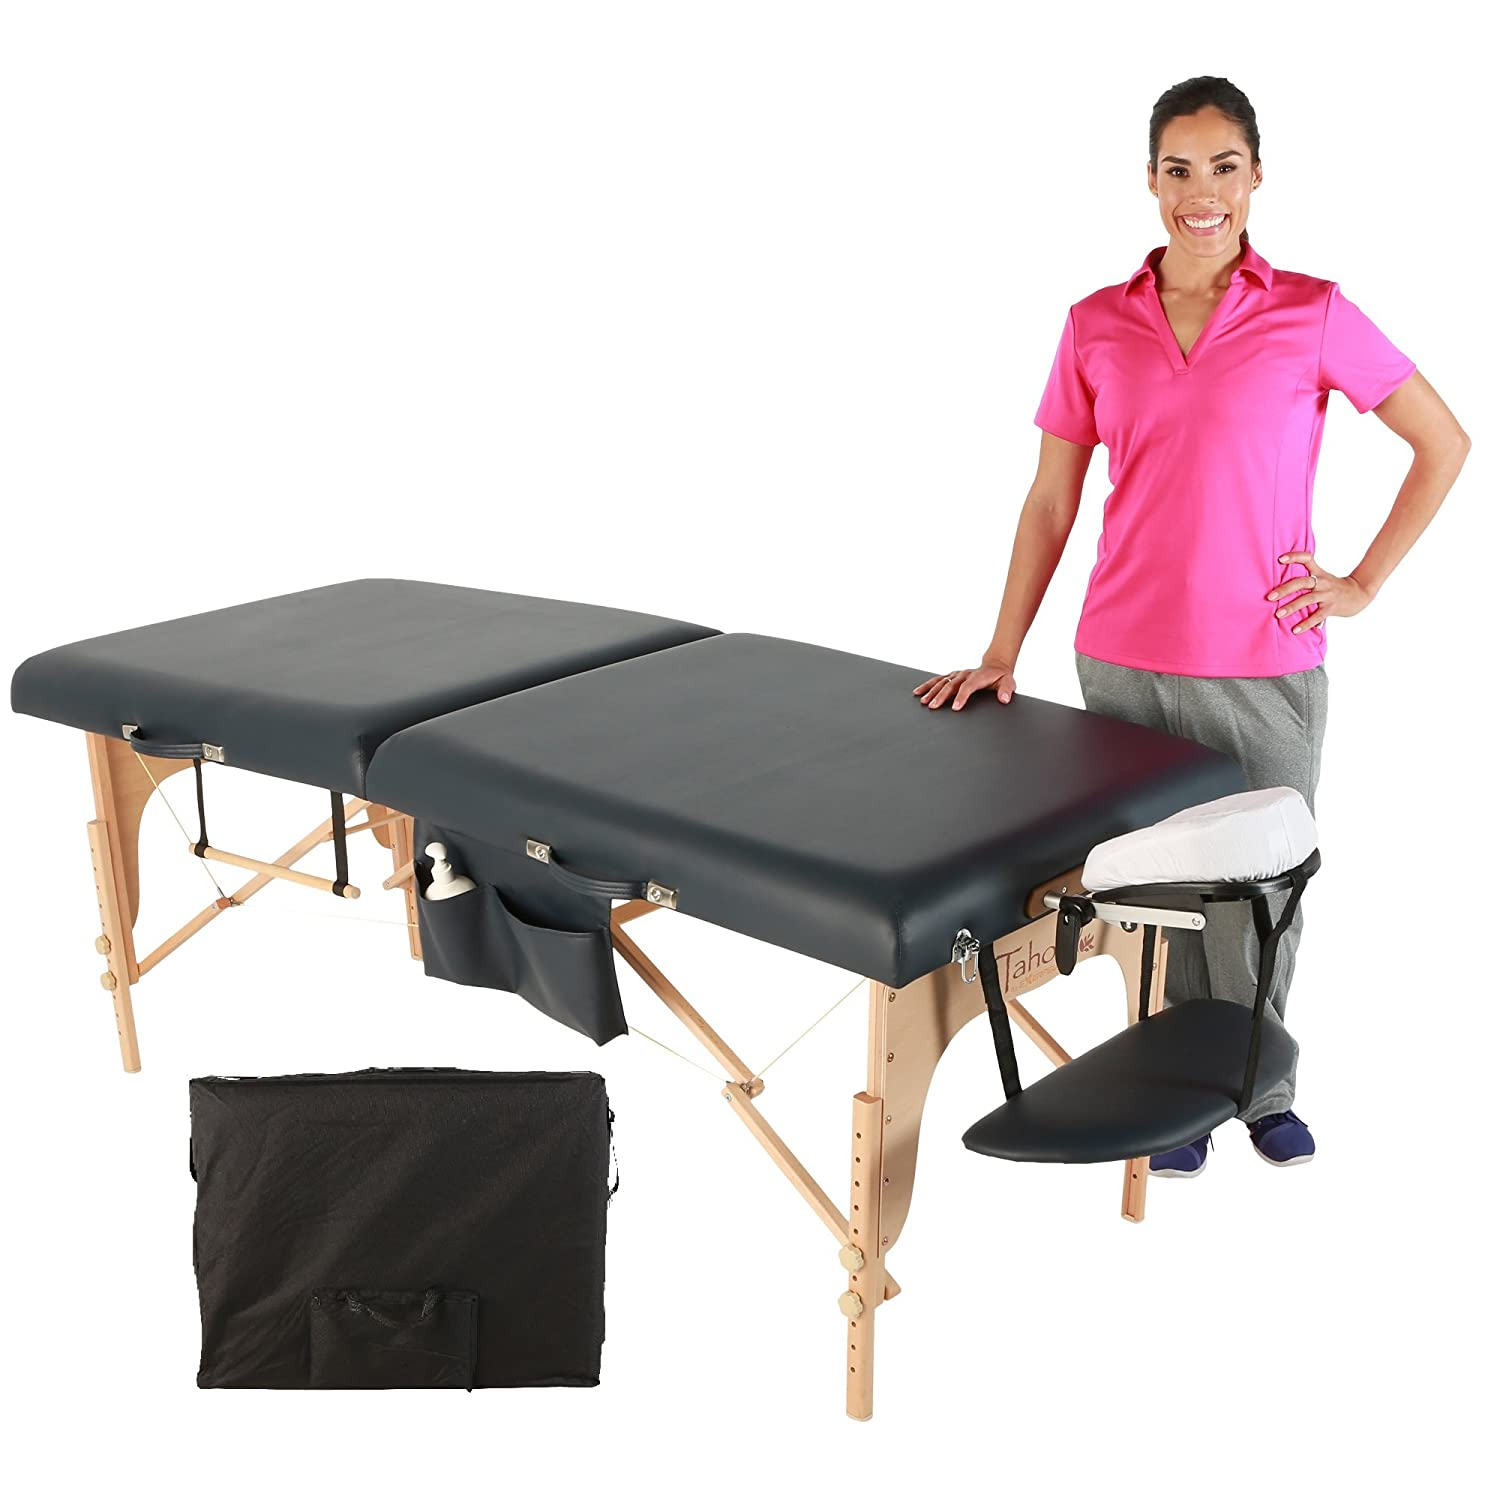 Exerpeutic 30 Tahoe Blue Sapphire Massage Table with Essential Accessories 9434